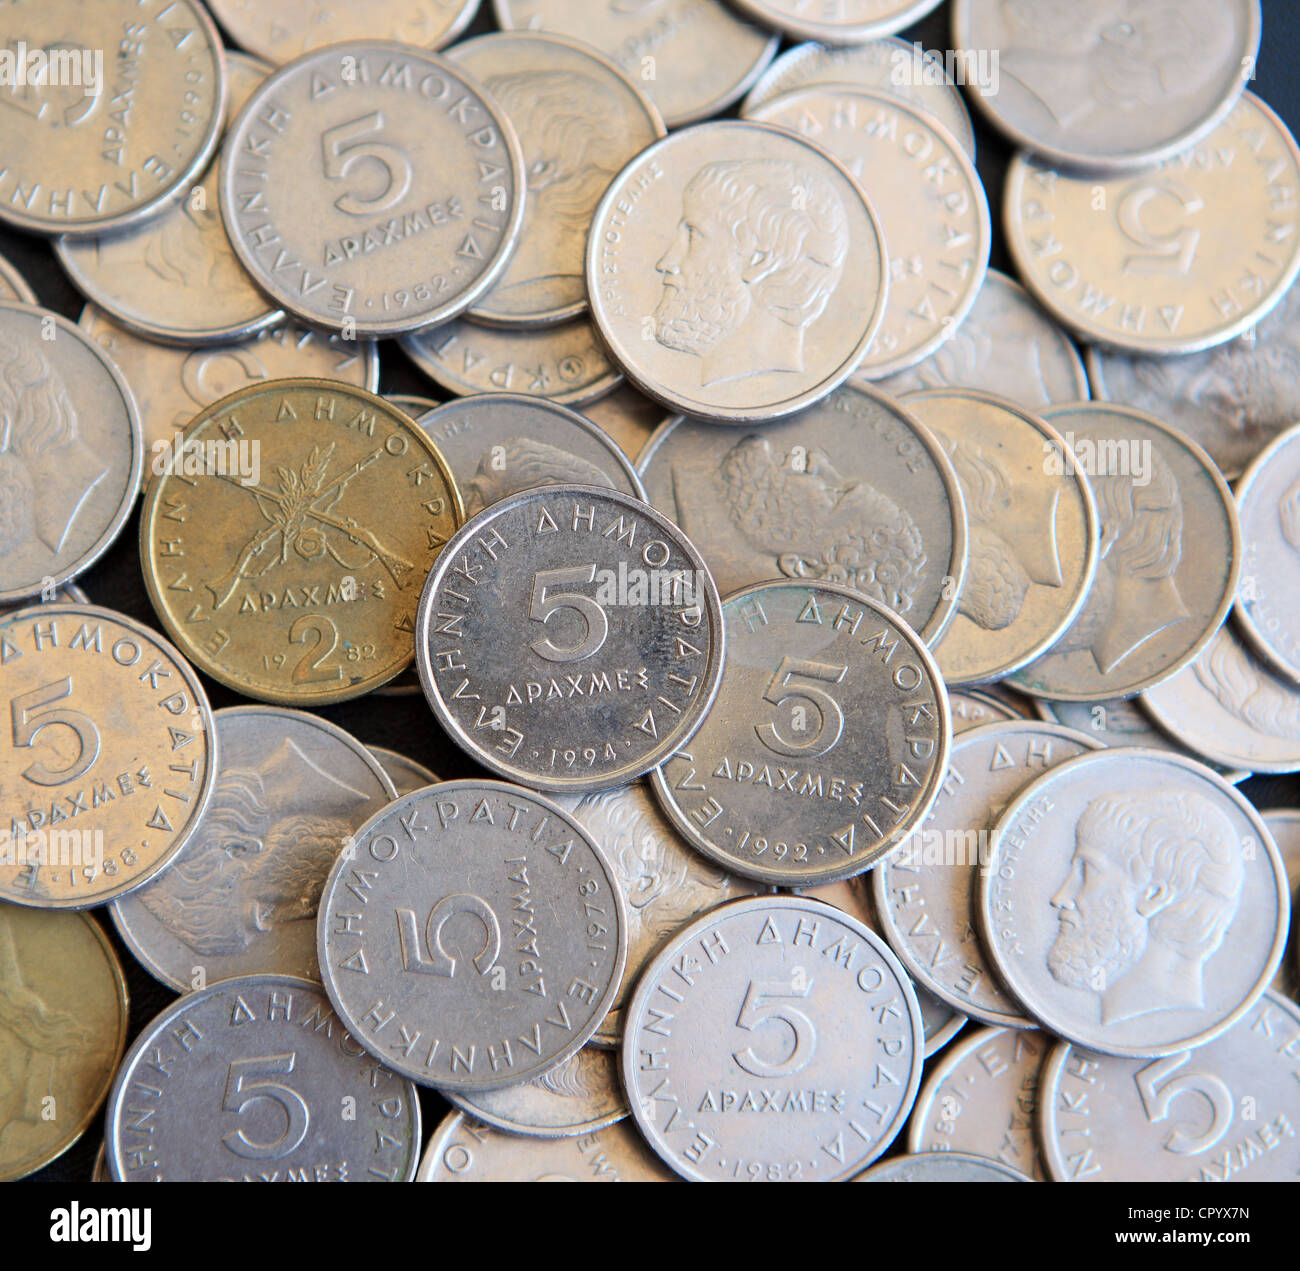 Pile of Greek Drachma coins - Stock Image